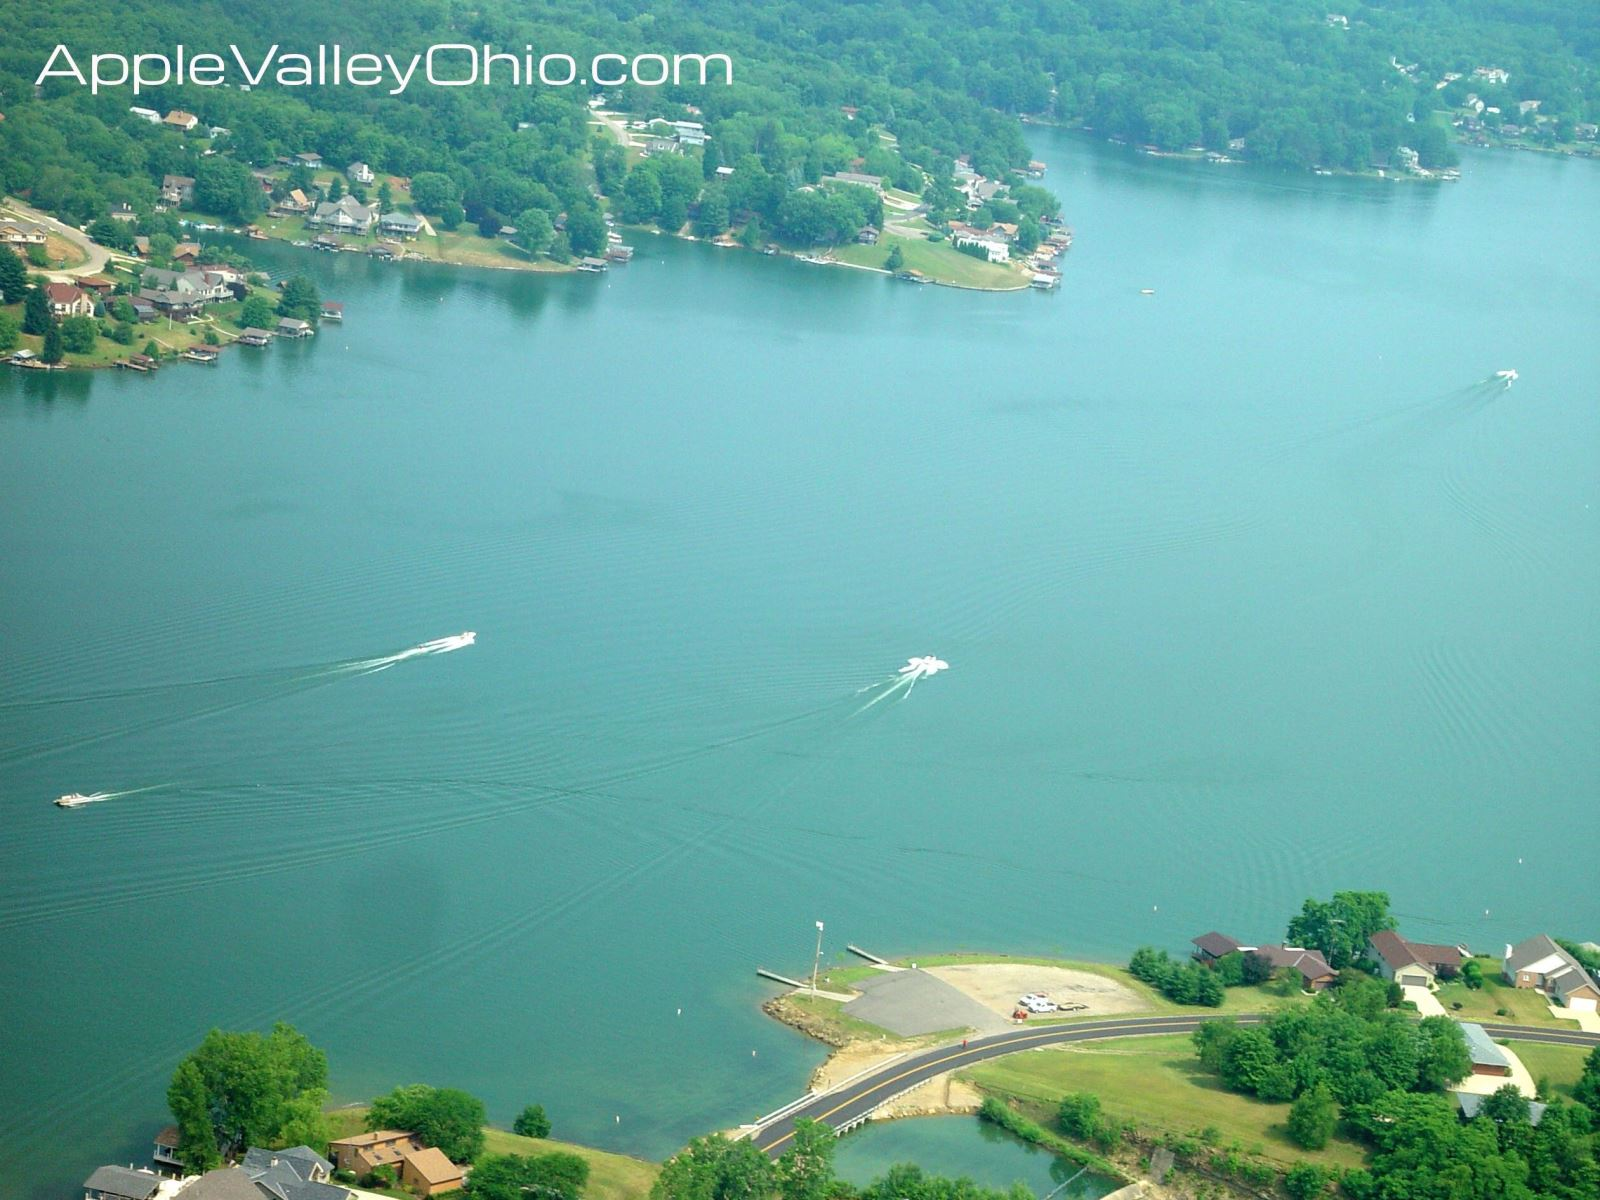 Aerial Photo Taken During an Airplane Flight Over The Apple Valley Lake